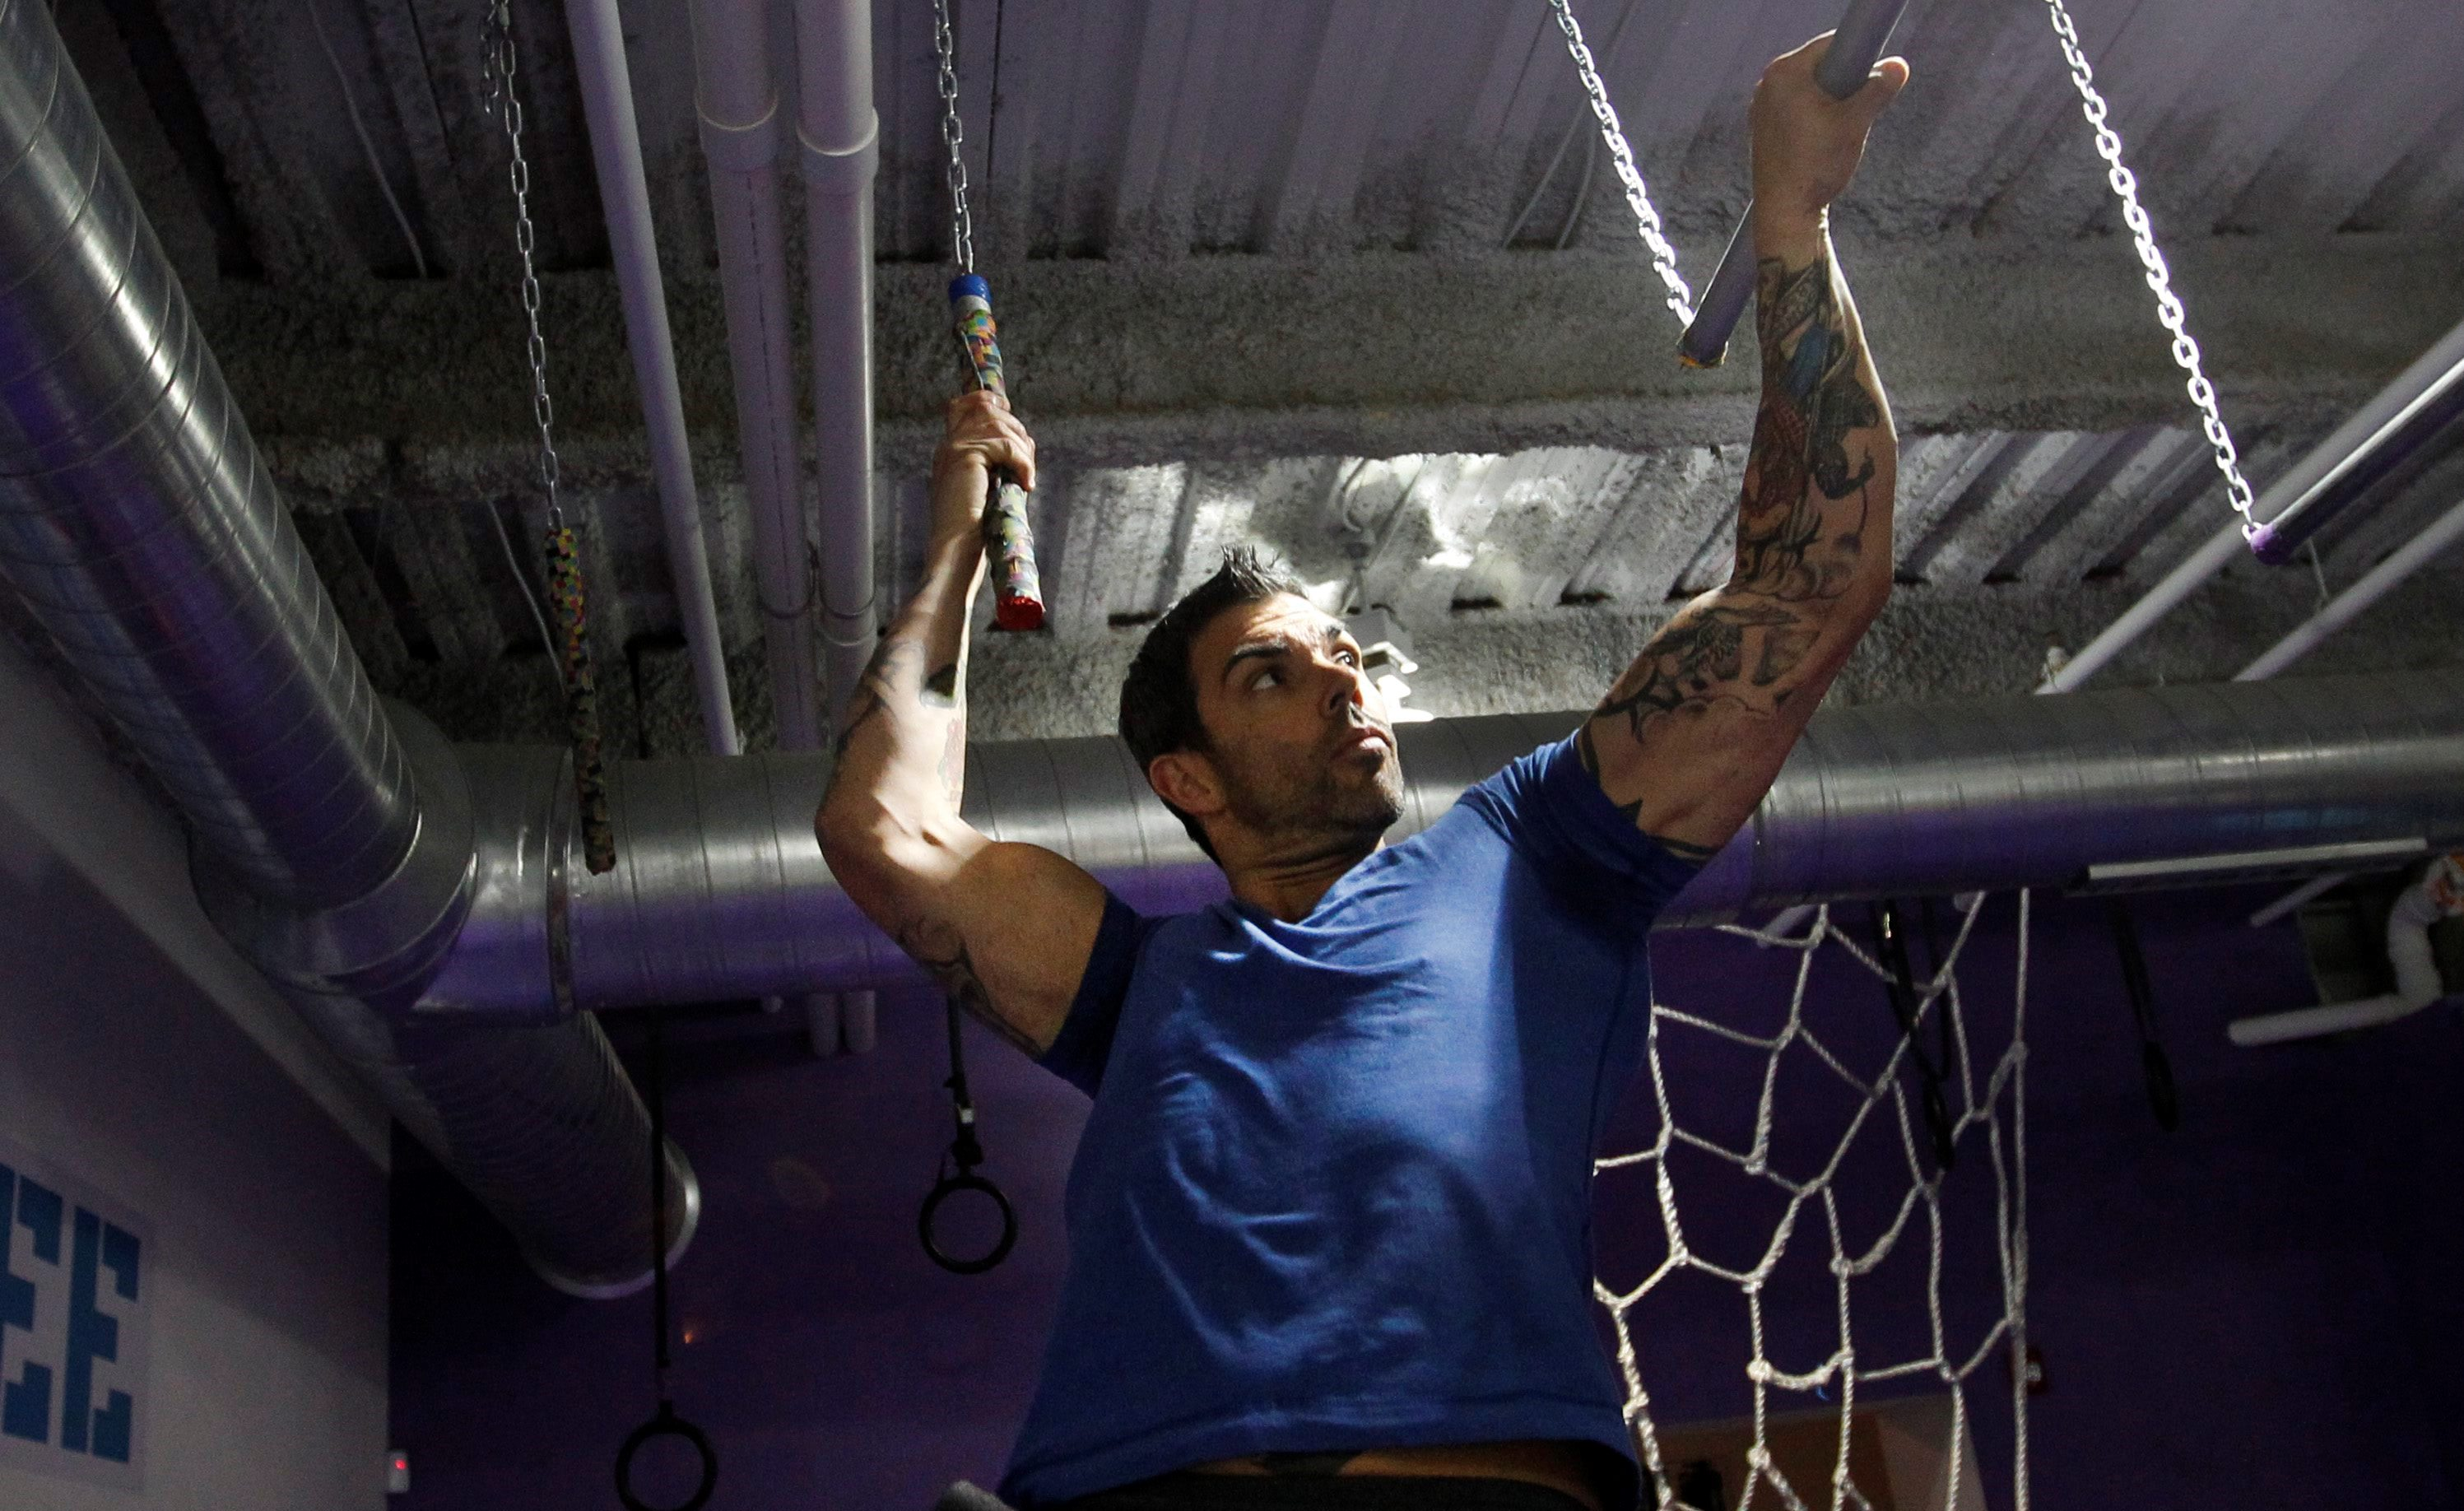 Hybrid Gym owner Patrick Hall will bring some of the biggest names in 'American Ninja Warrior' to his obstacle course gym Saturday. (Buffalo News File Photo)